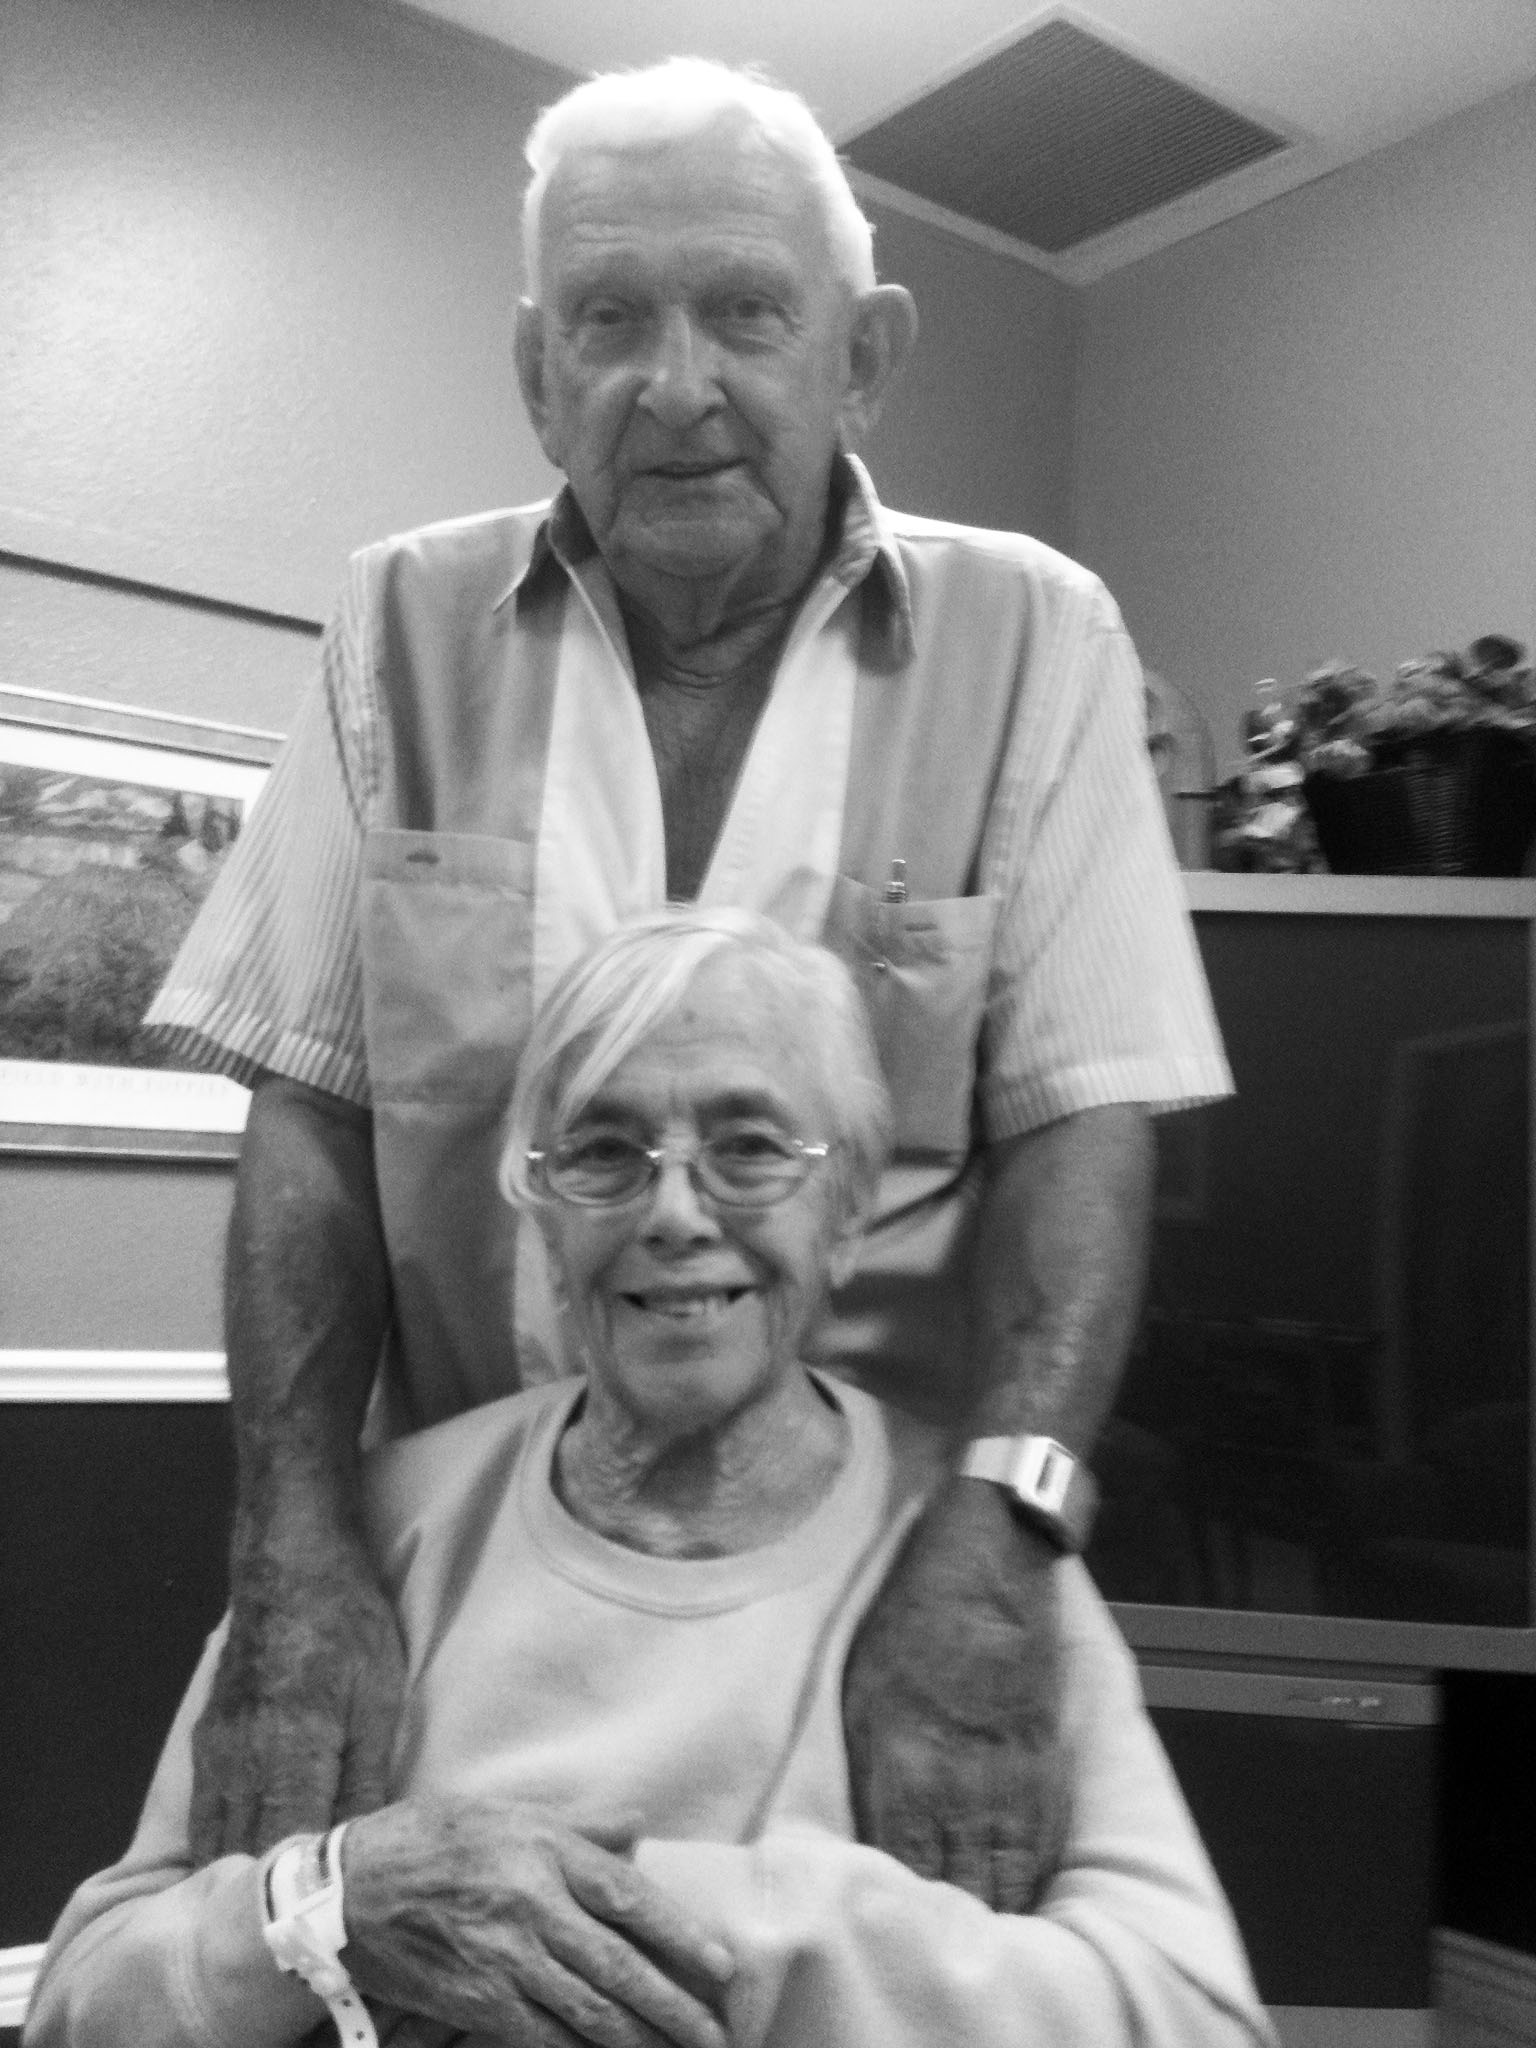 Margie and Lyle Ekstrom